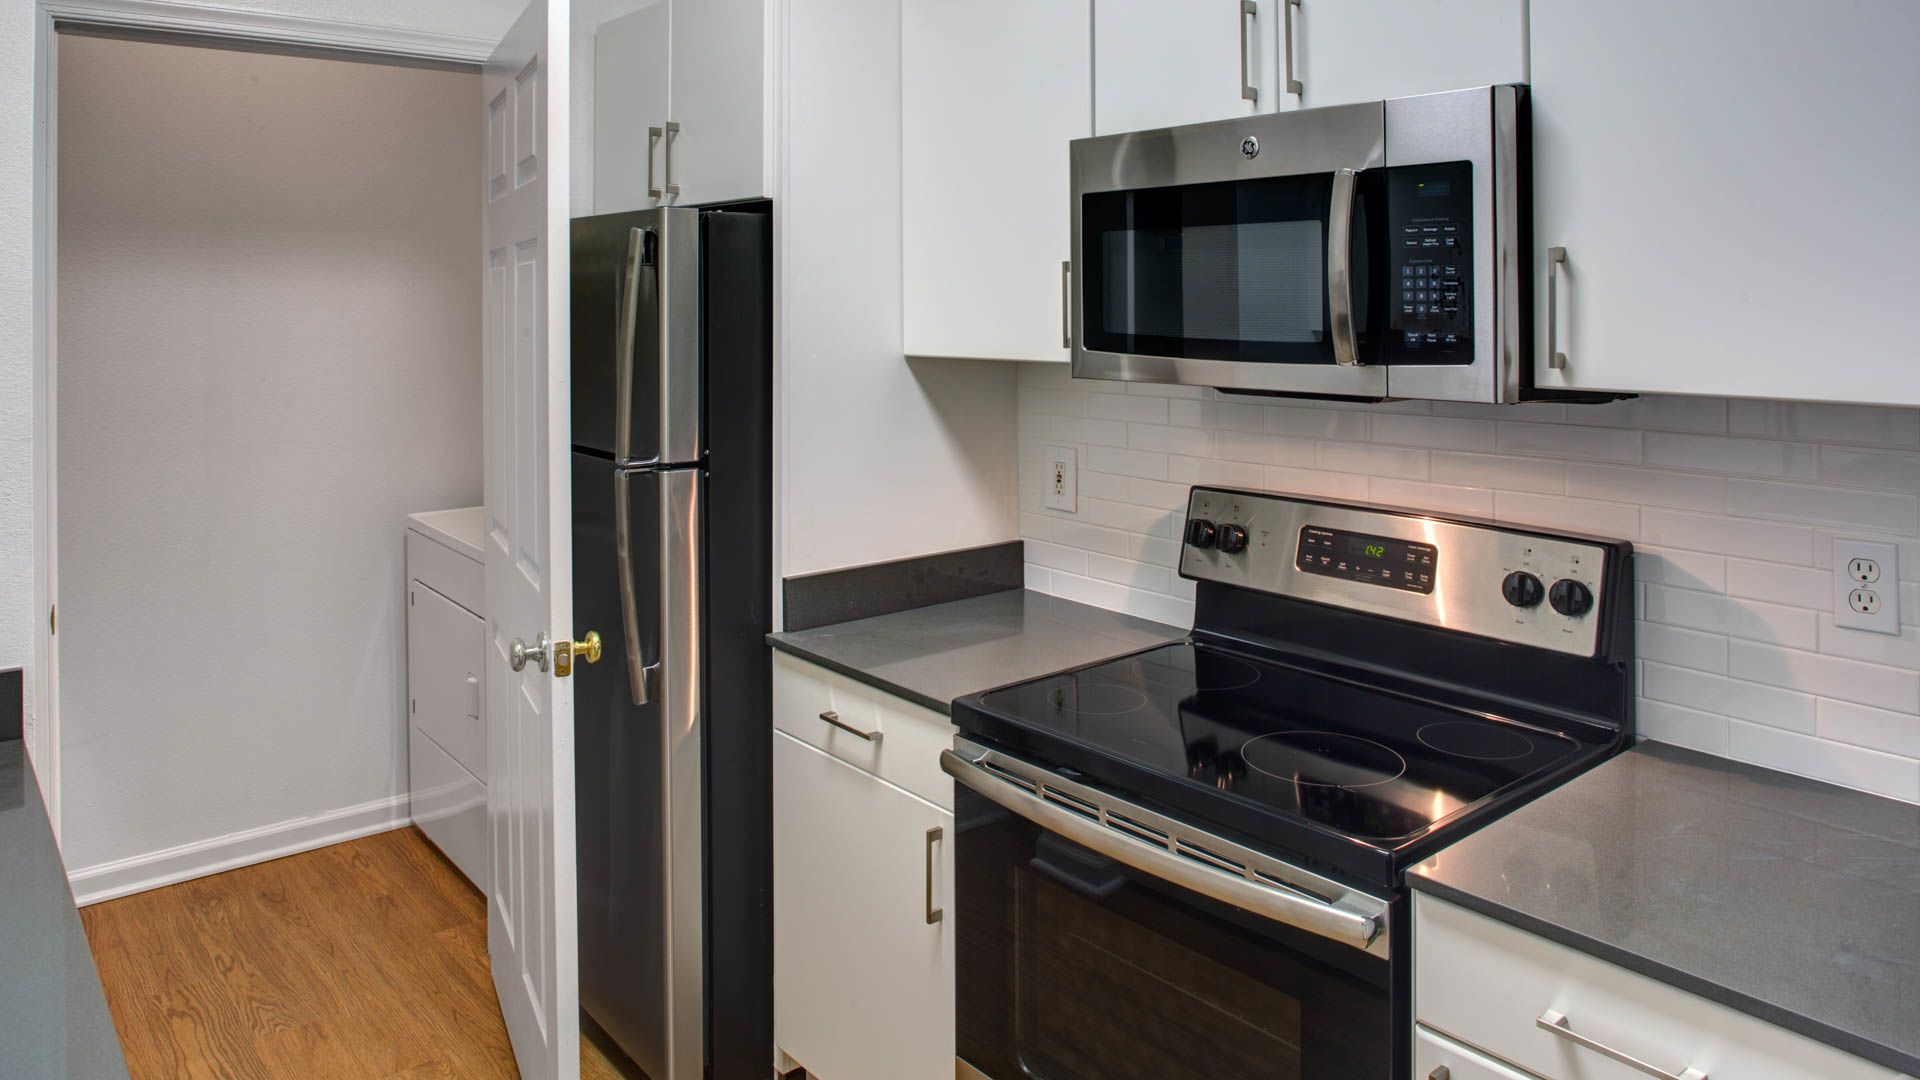 Superior Reserve At Potomac Yard Apartments In Alexandria   3700 Jefferson Davis Hwy  | EquityApartments.com